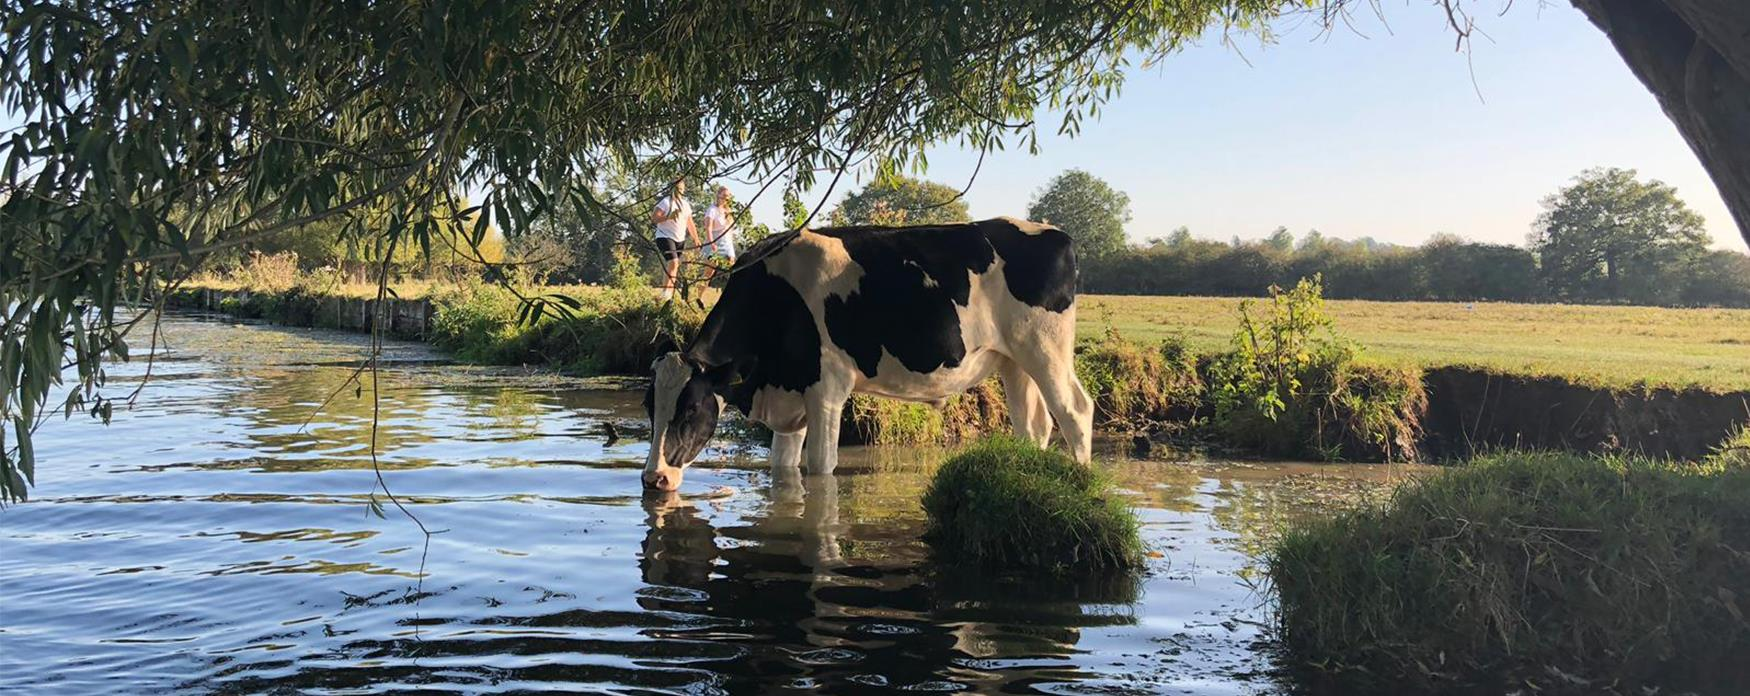 A cow standing by the river at Dedham